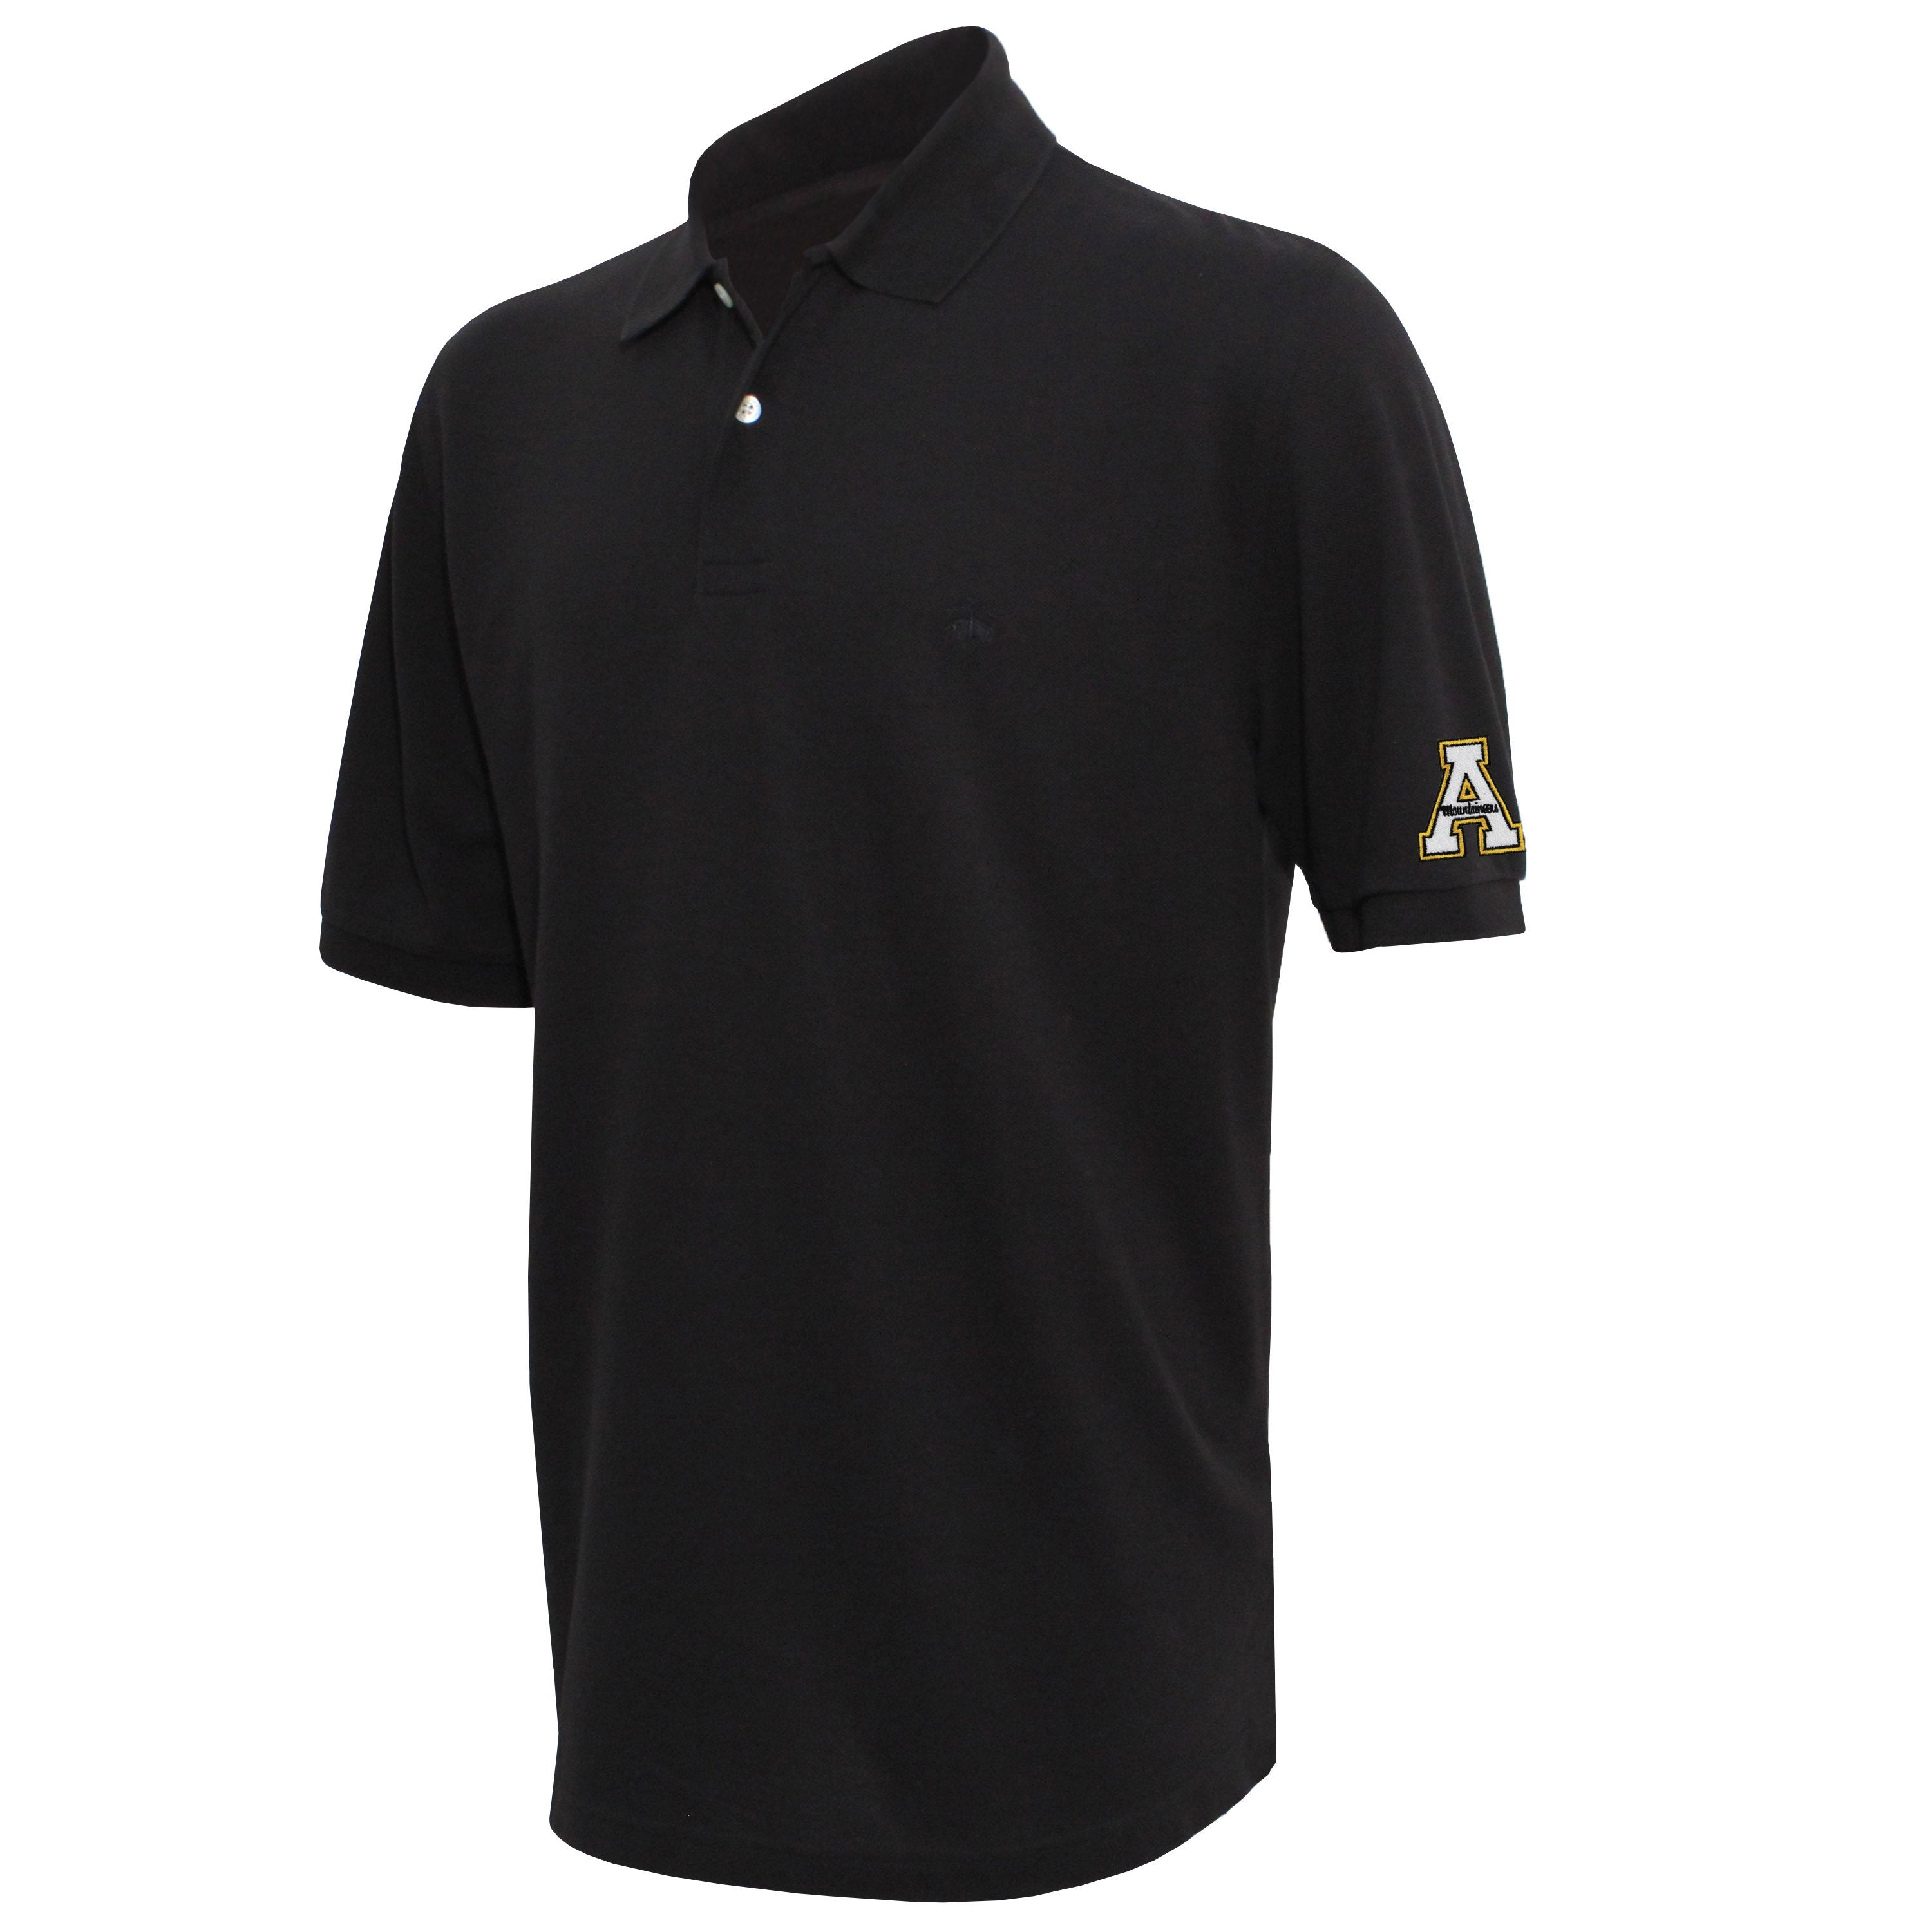 Brooks Brothers Appalachian State Men's Black Original Fit Pique Polo Shirt